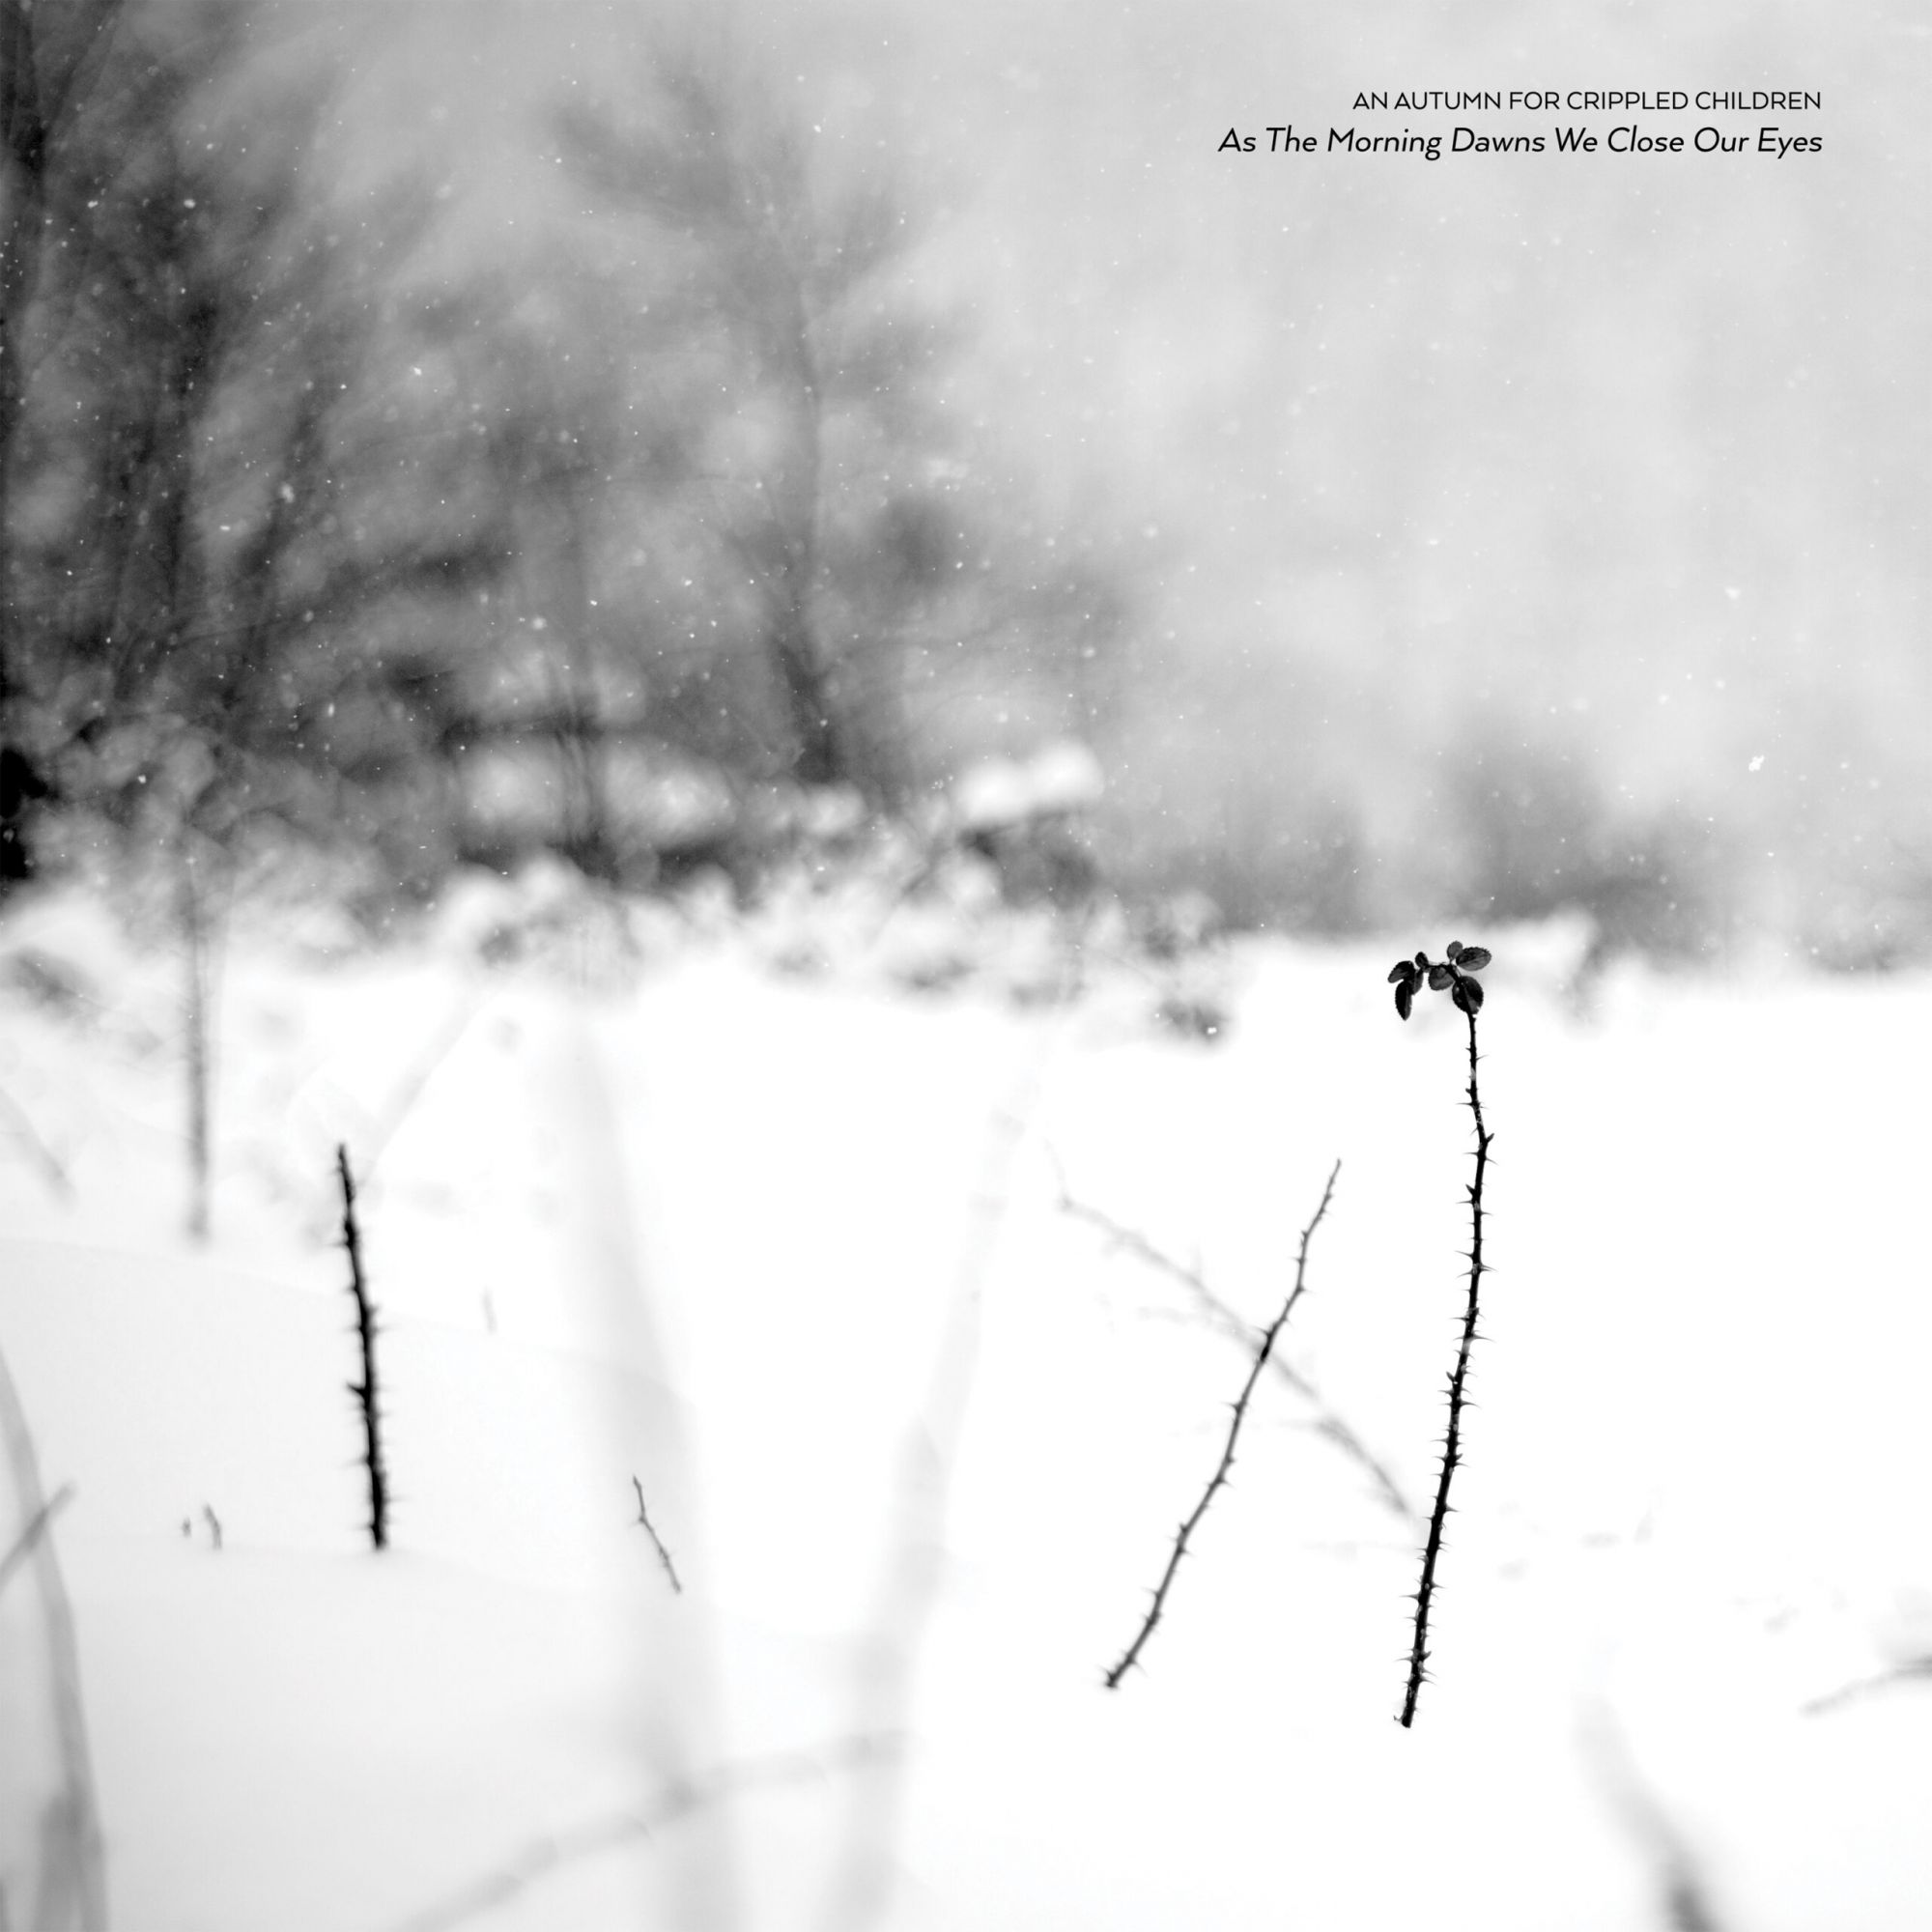 Reviews for An Autumn for Crippled Children - As the Morning Dawns We Close Our Eyes